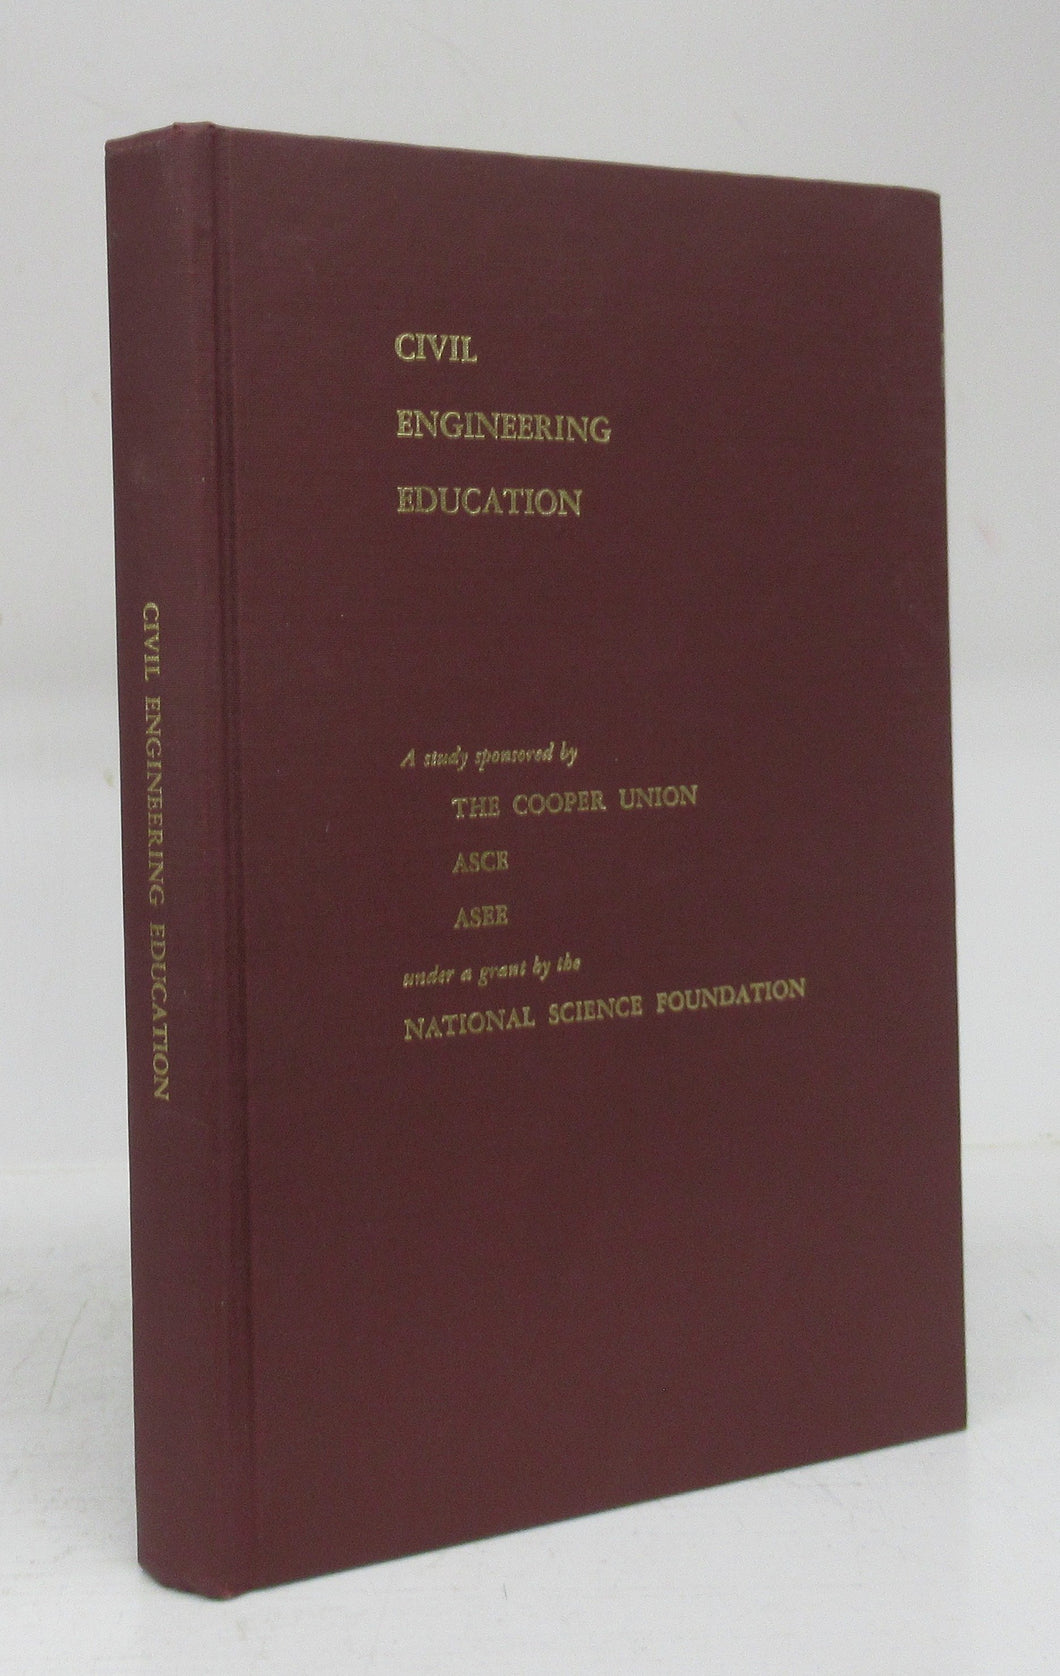 Civil Engineering Education